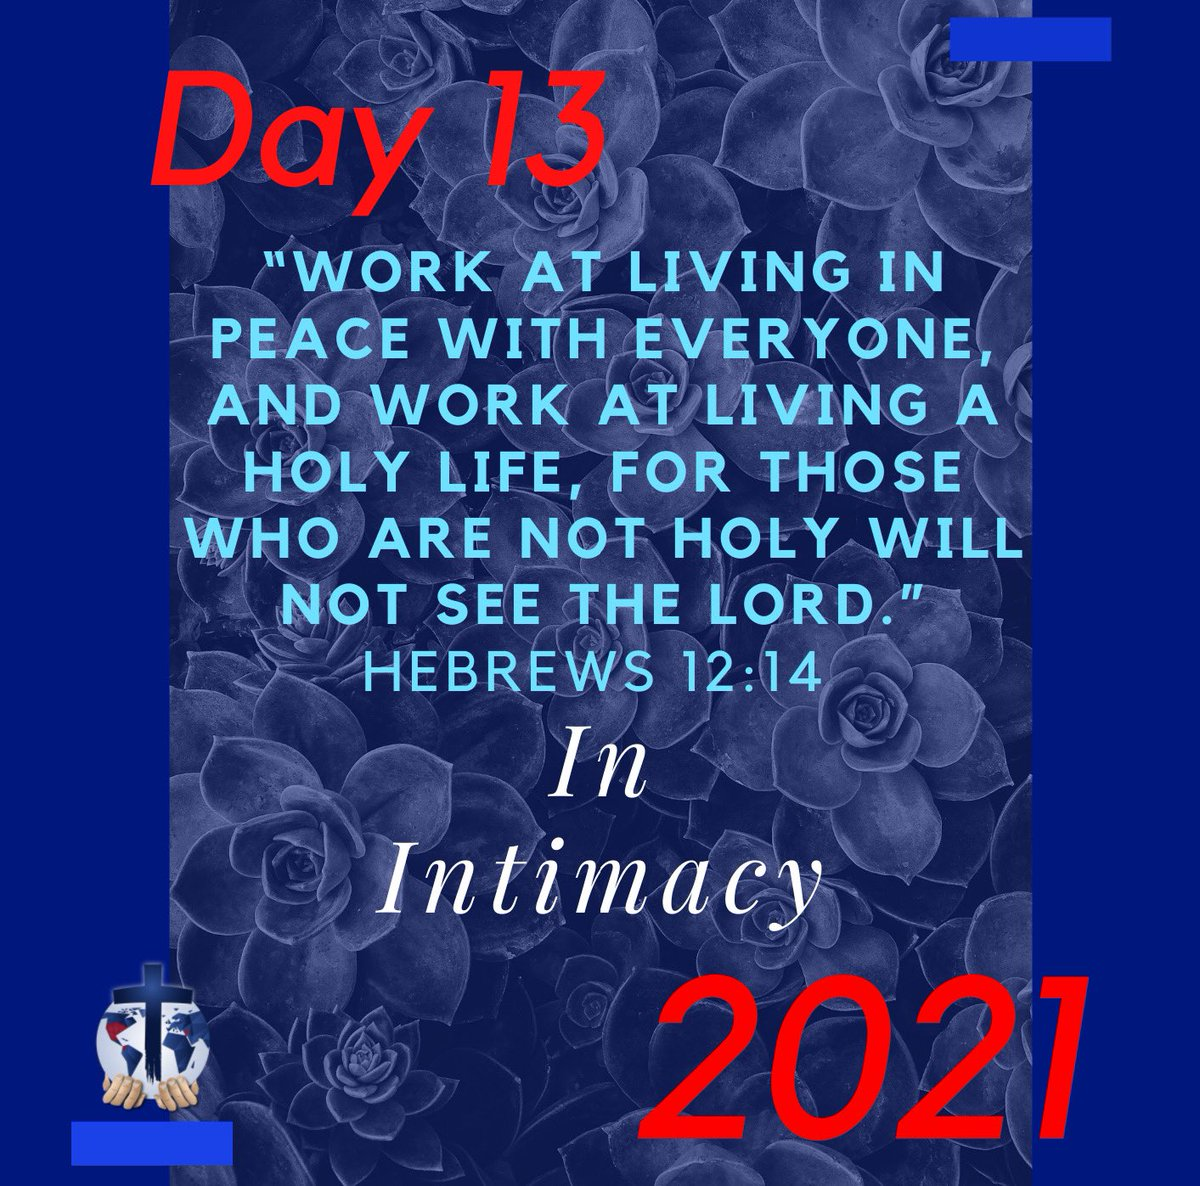 Intimacy = Be more like Jesus - He is Sufficient - Depend on Him = Fix your eyes on Jesus  #Day13 #Hebrews12 #InIntimacy #Fasting2021